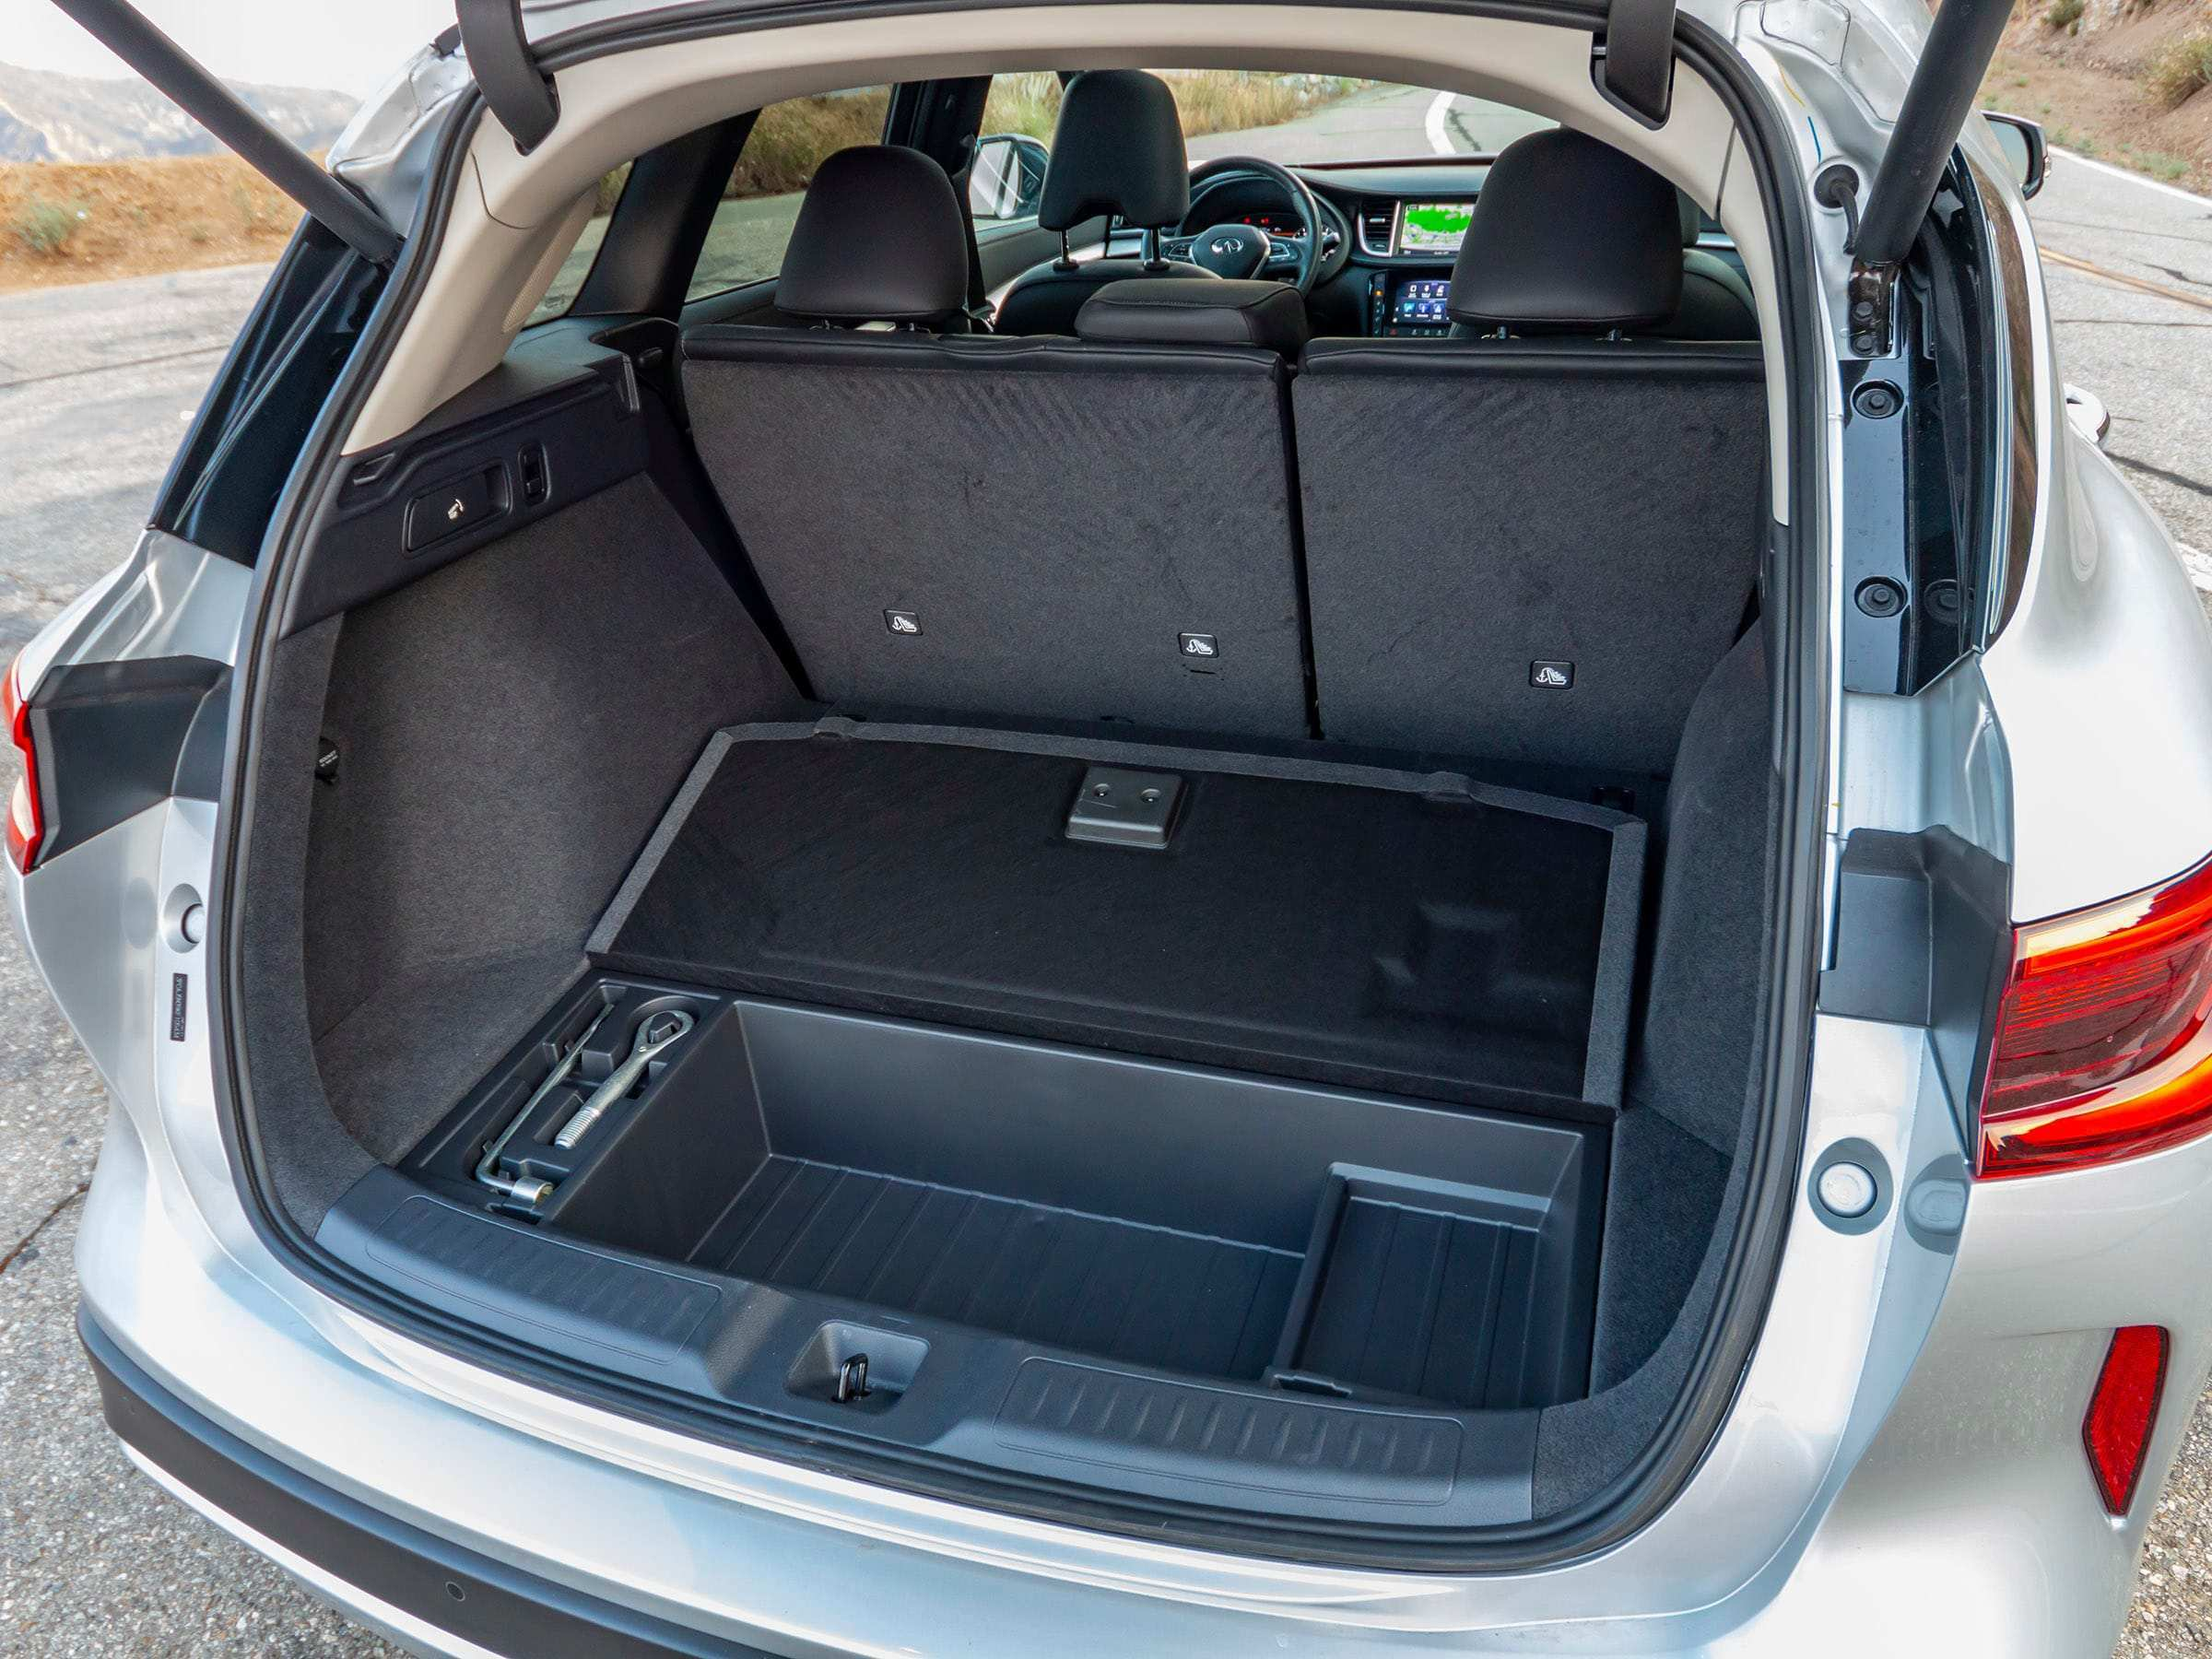 63 Best Review Best Infiniti Qx50 2019 Trunk Space Price Review for Best Infiniti Qx50 2019 Trunk Space Price